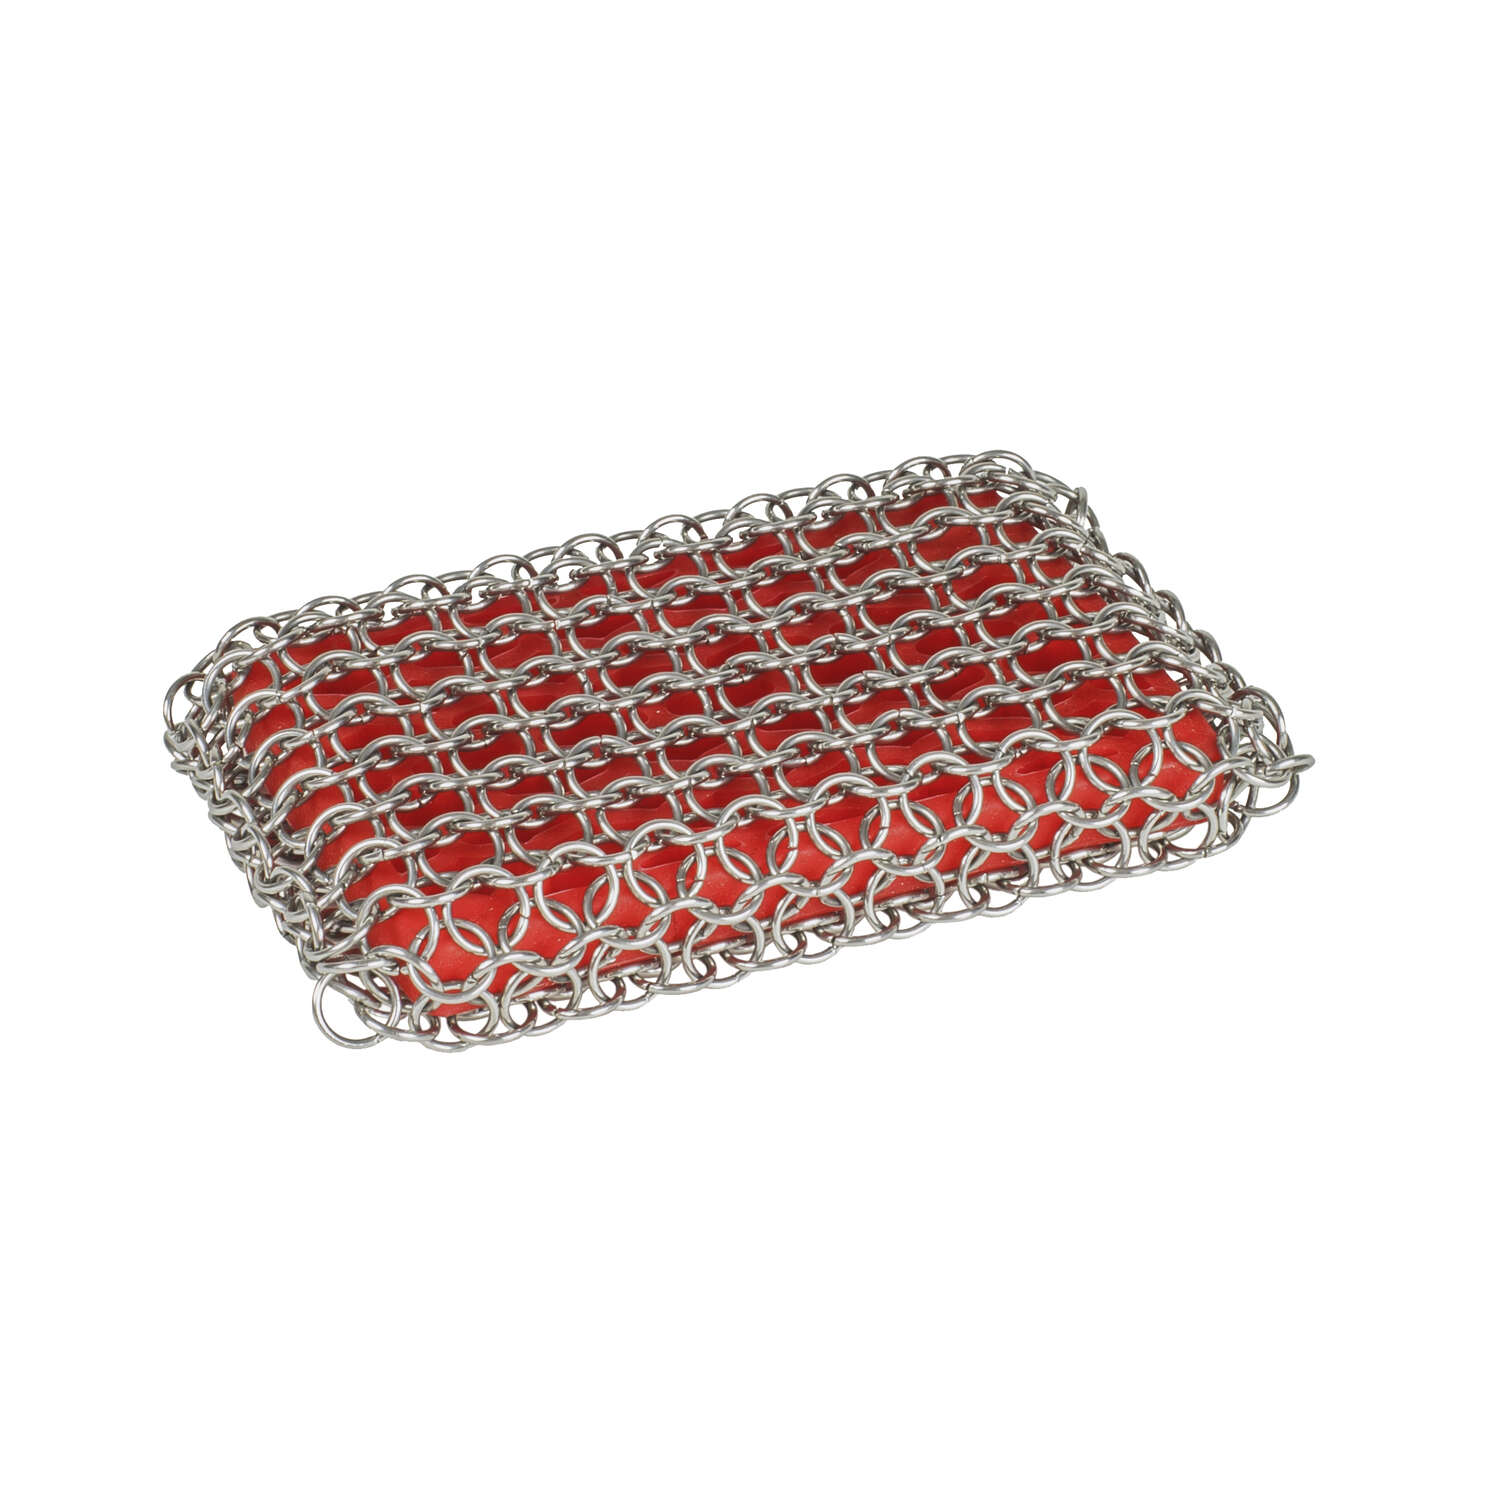 Lodge  Chainmail  Heavy Duty  Scrubbing Pad  For Cast Iron 8.71 in. L 1 pk